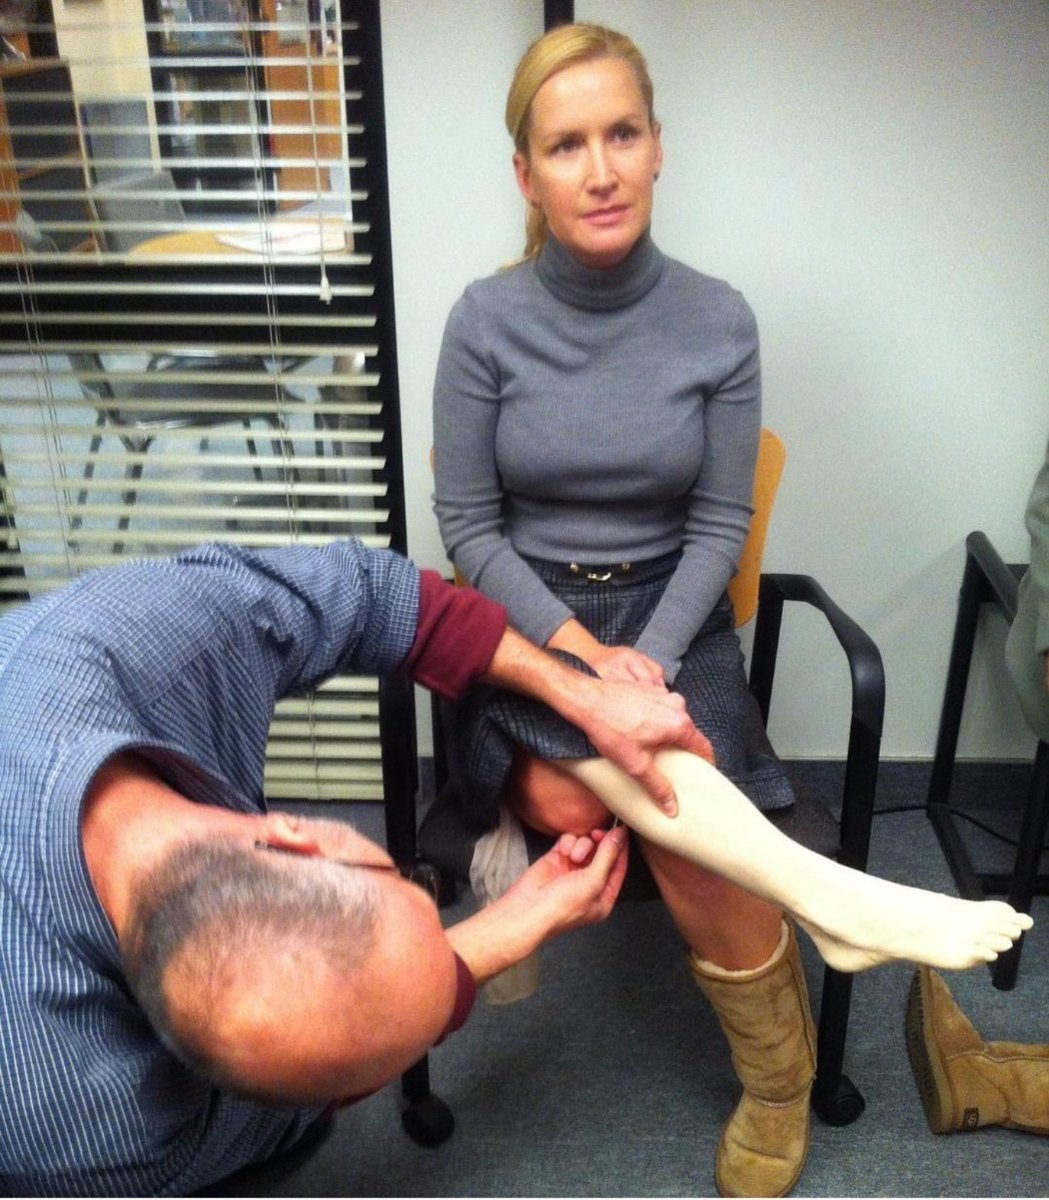 Today I discovered that Angela Kinsey from #theoffice was going to get prosthetic leg in the show but then that was never used! <br>http://pic.twitter.com/yTkr1MBwpv